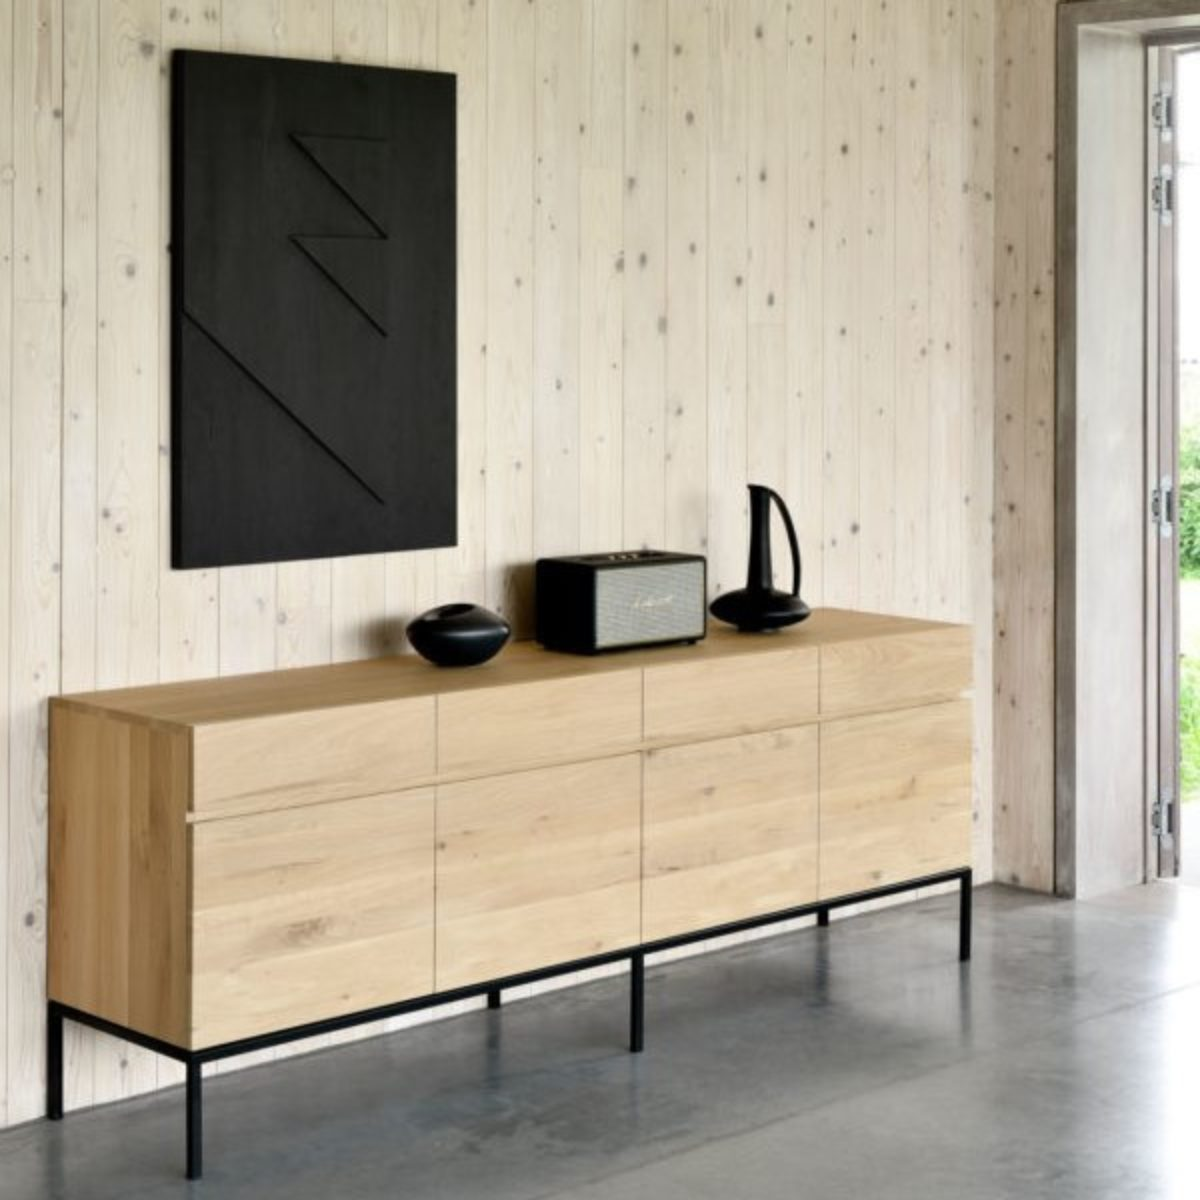 Ethnicraft Oak Ligna sideboard 04